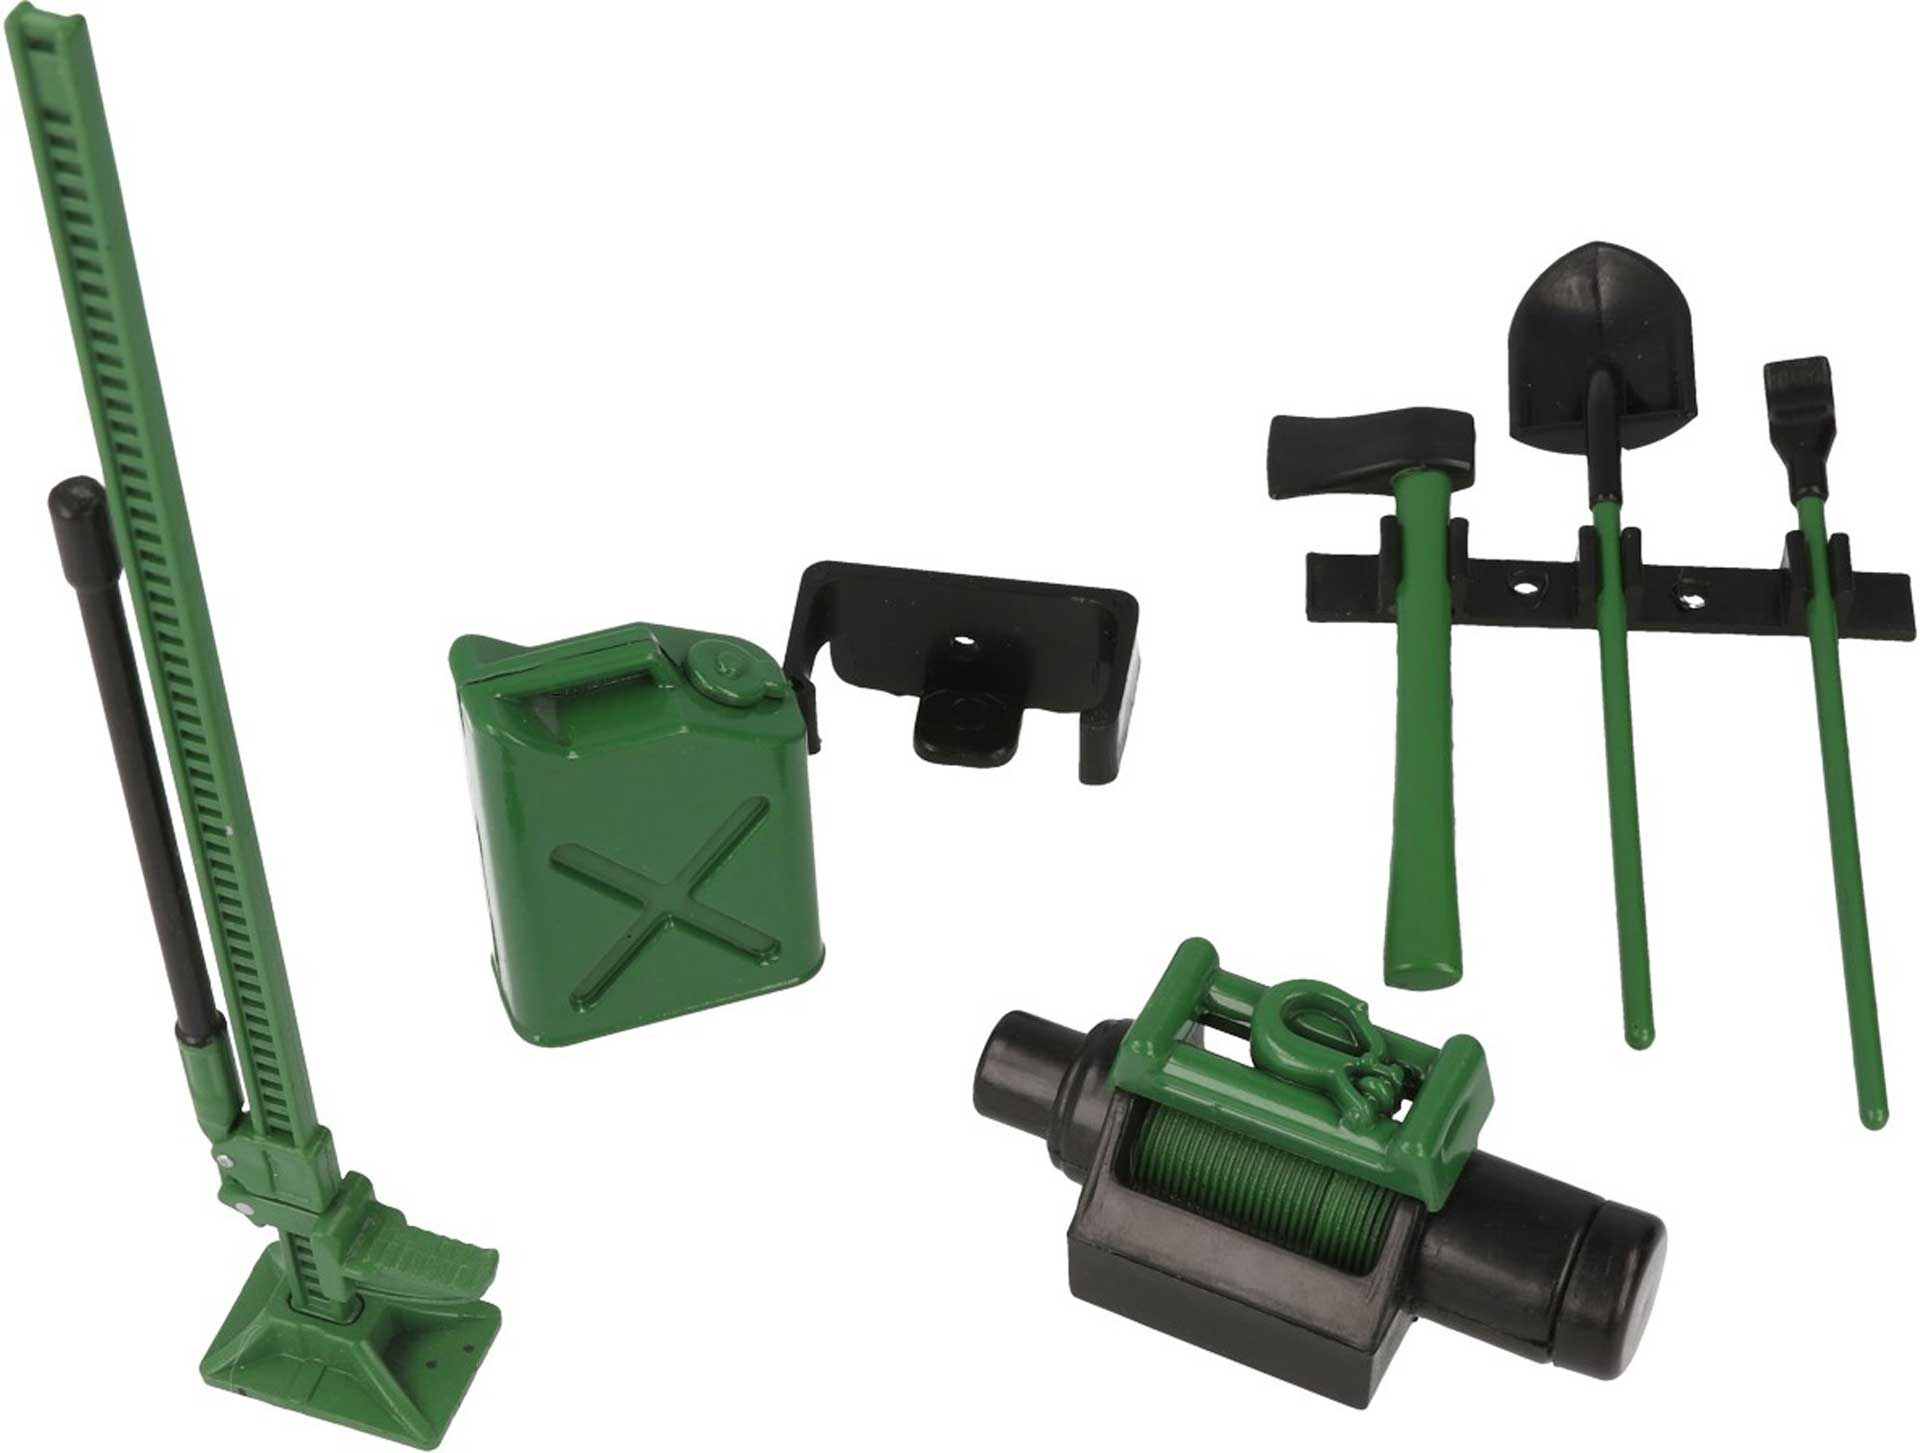 ROBITRONIC Tool Set with Holder Decor Green